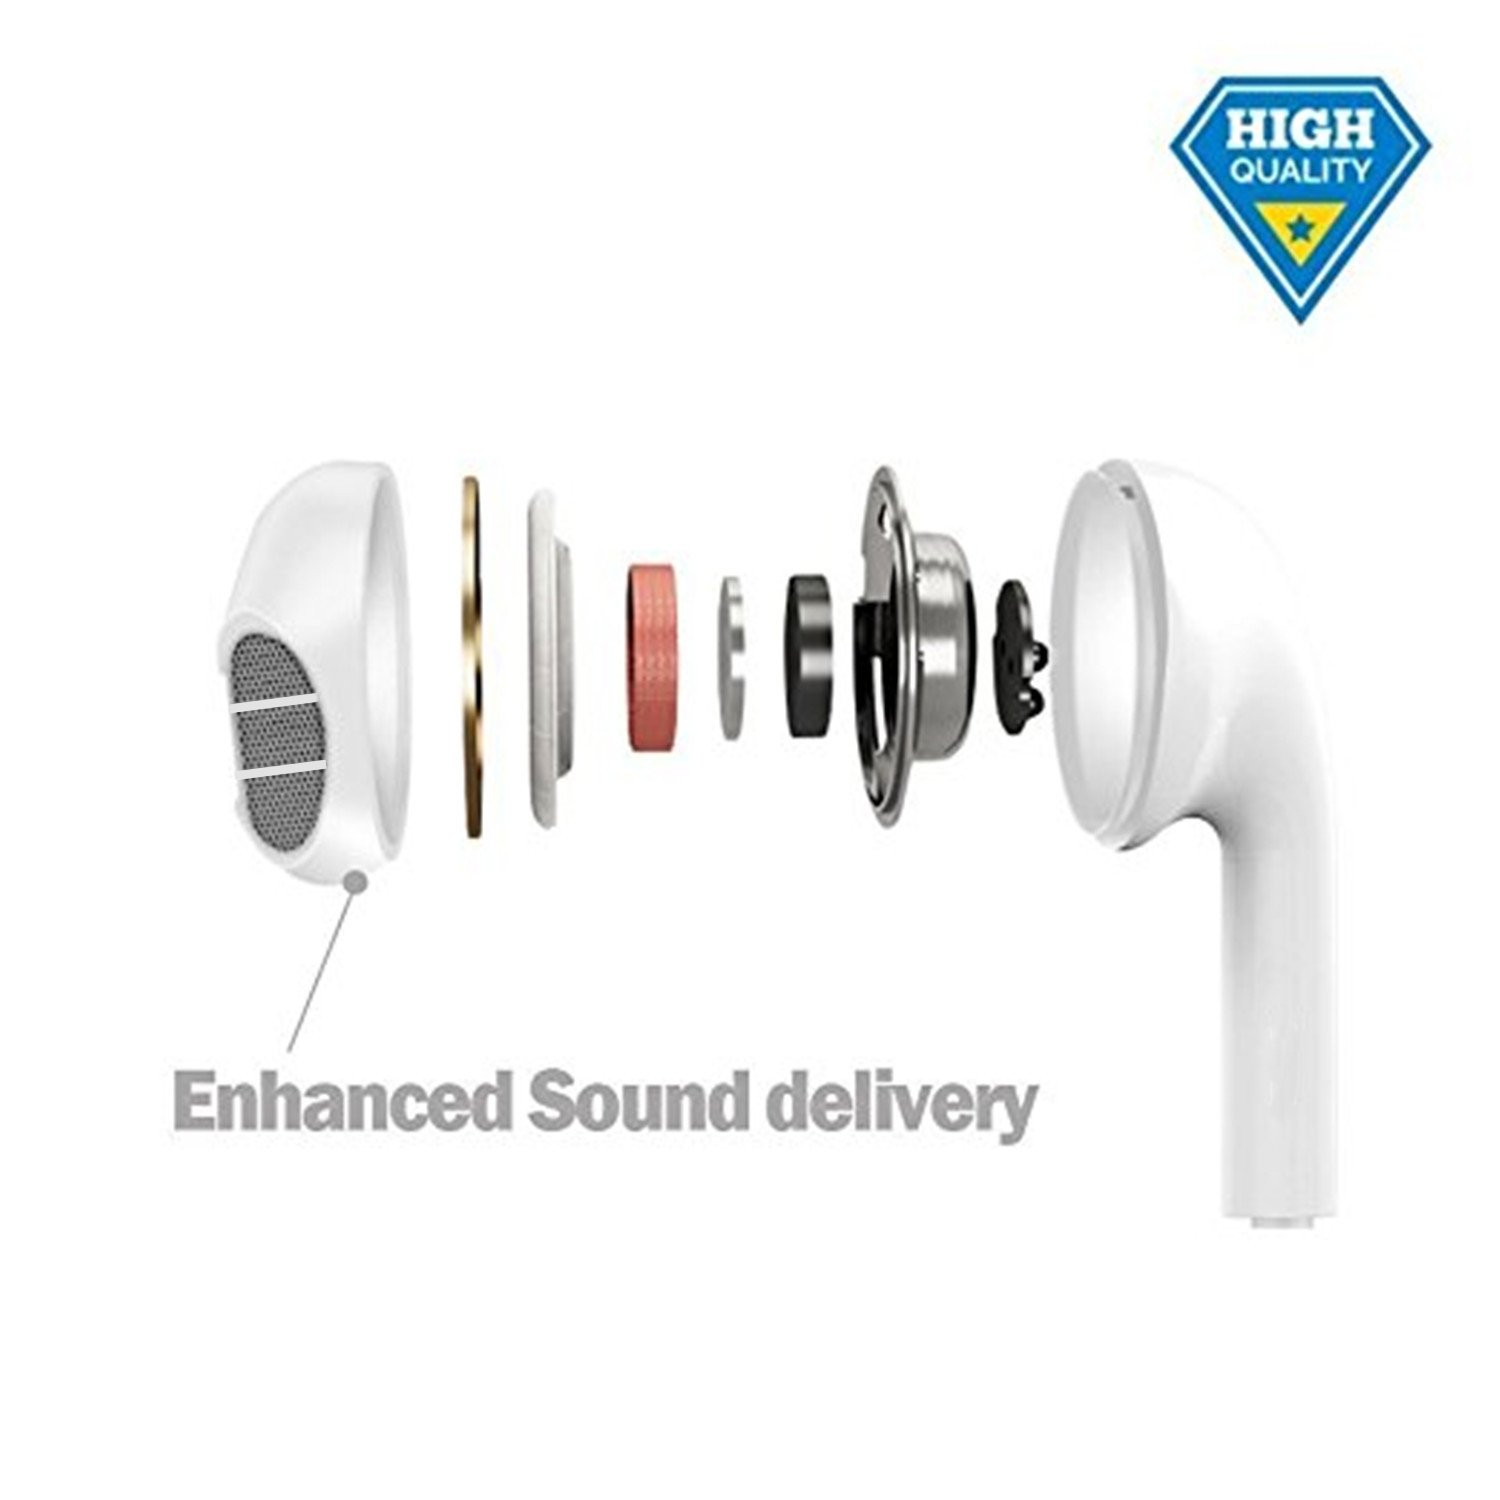 iPhone Headphones Ear Buds with Mic Remote Volume Control Earphone Headset Compatible iPhone 6s 6 5s Se 5 5c 4s Plus iPod iPad White (2-Pack) by Generic (Image #2)